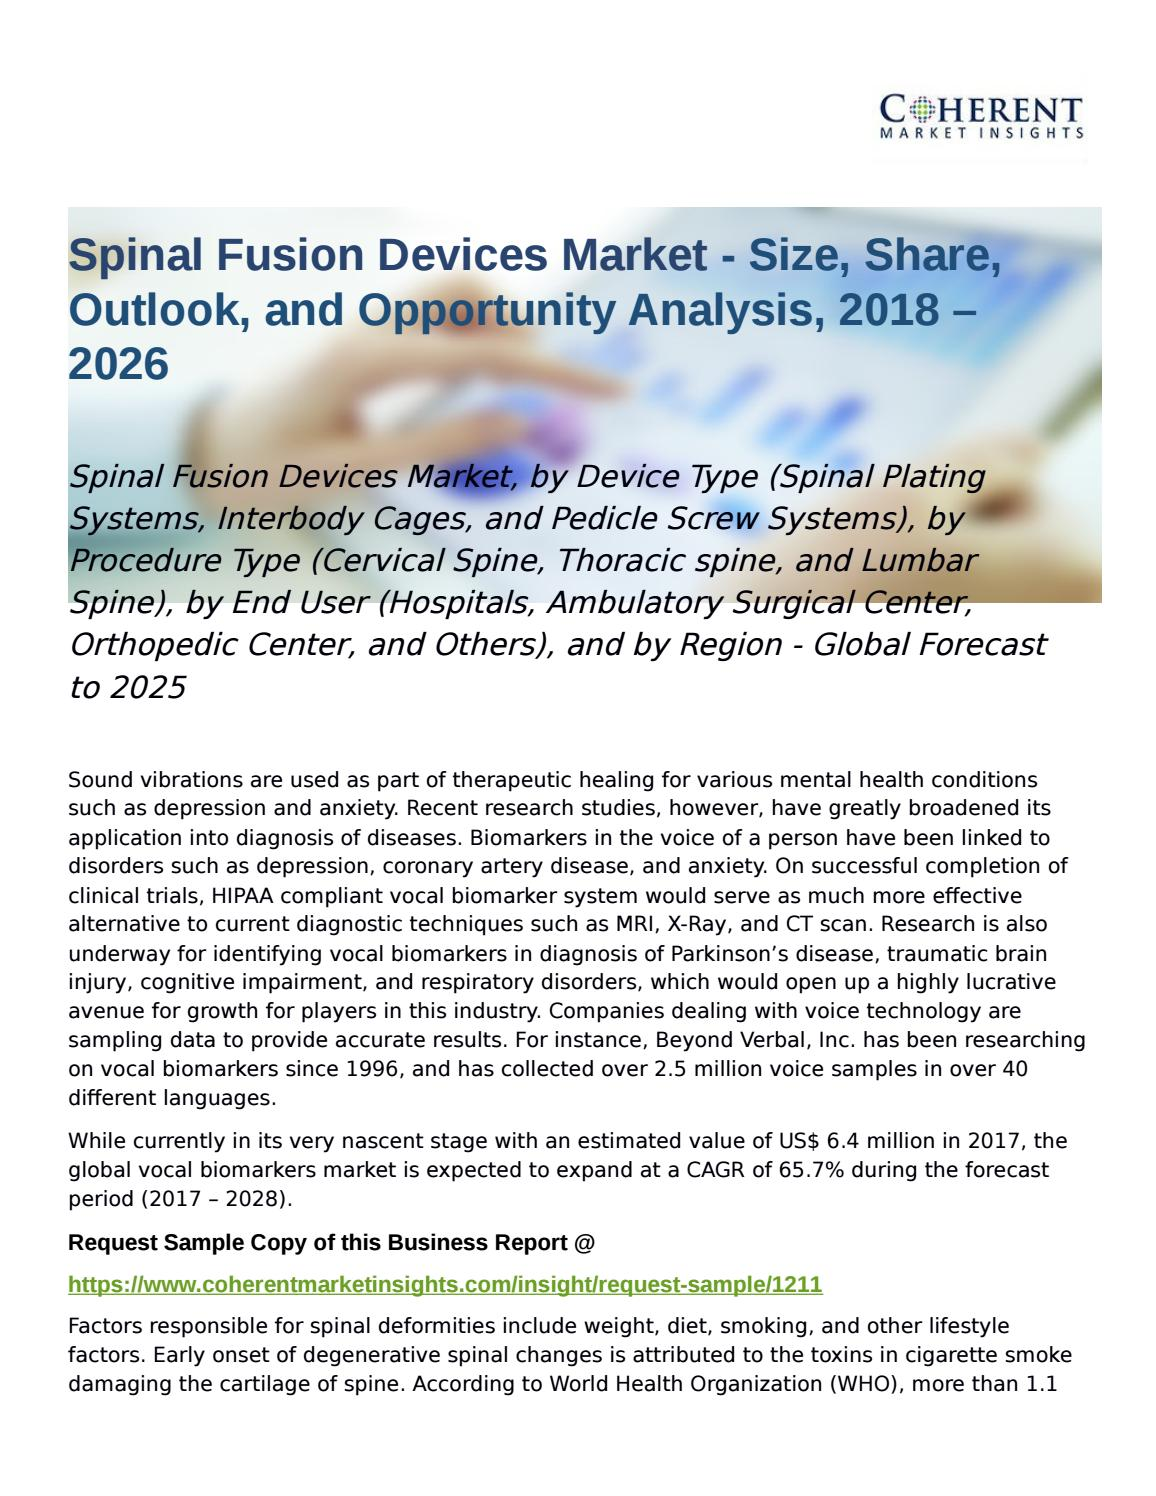 Spinal Fusion Devices Market Global Forecast to 2025 by